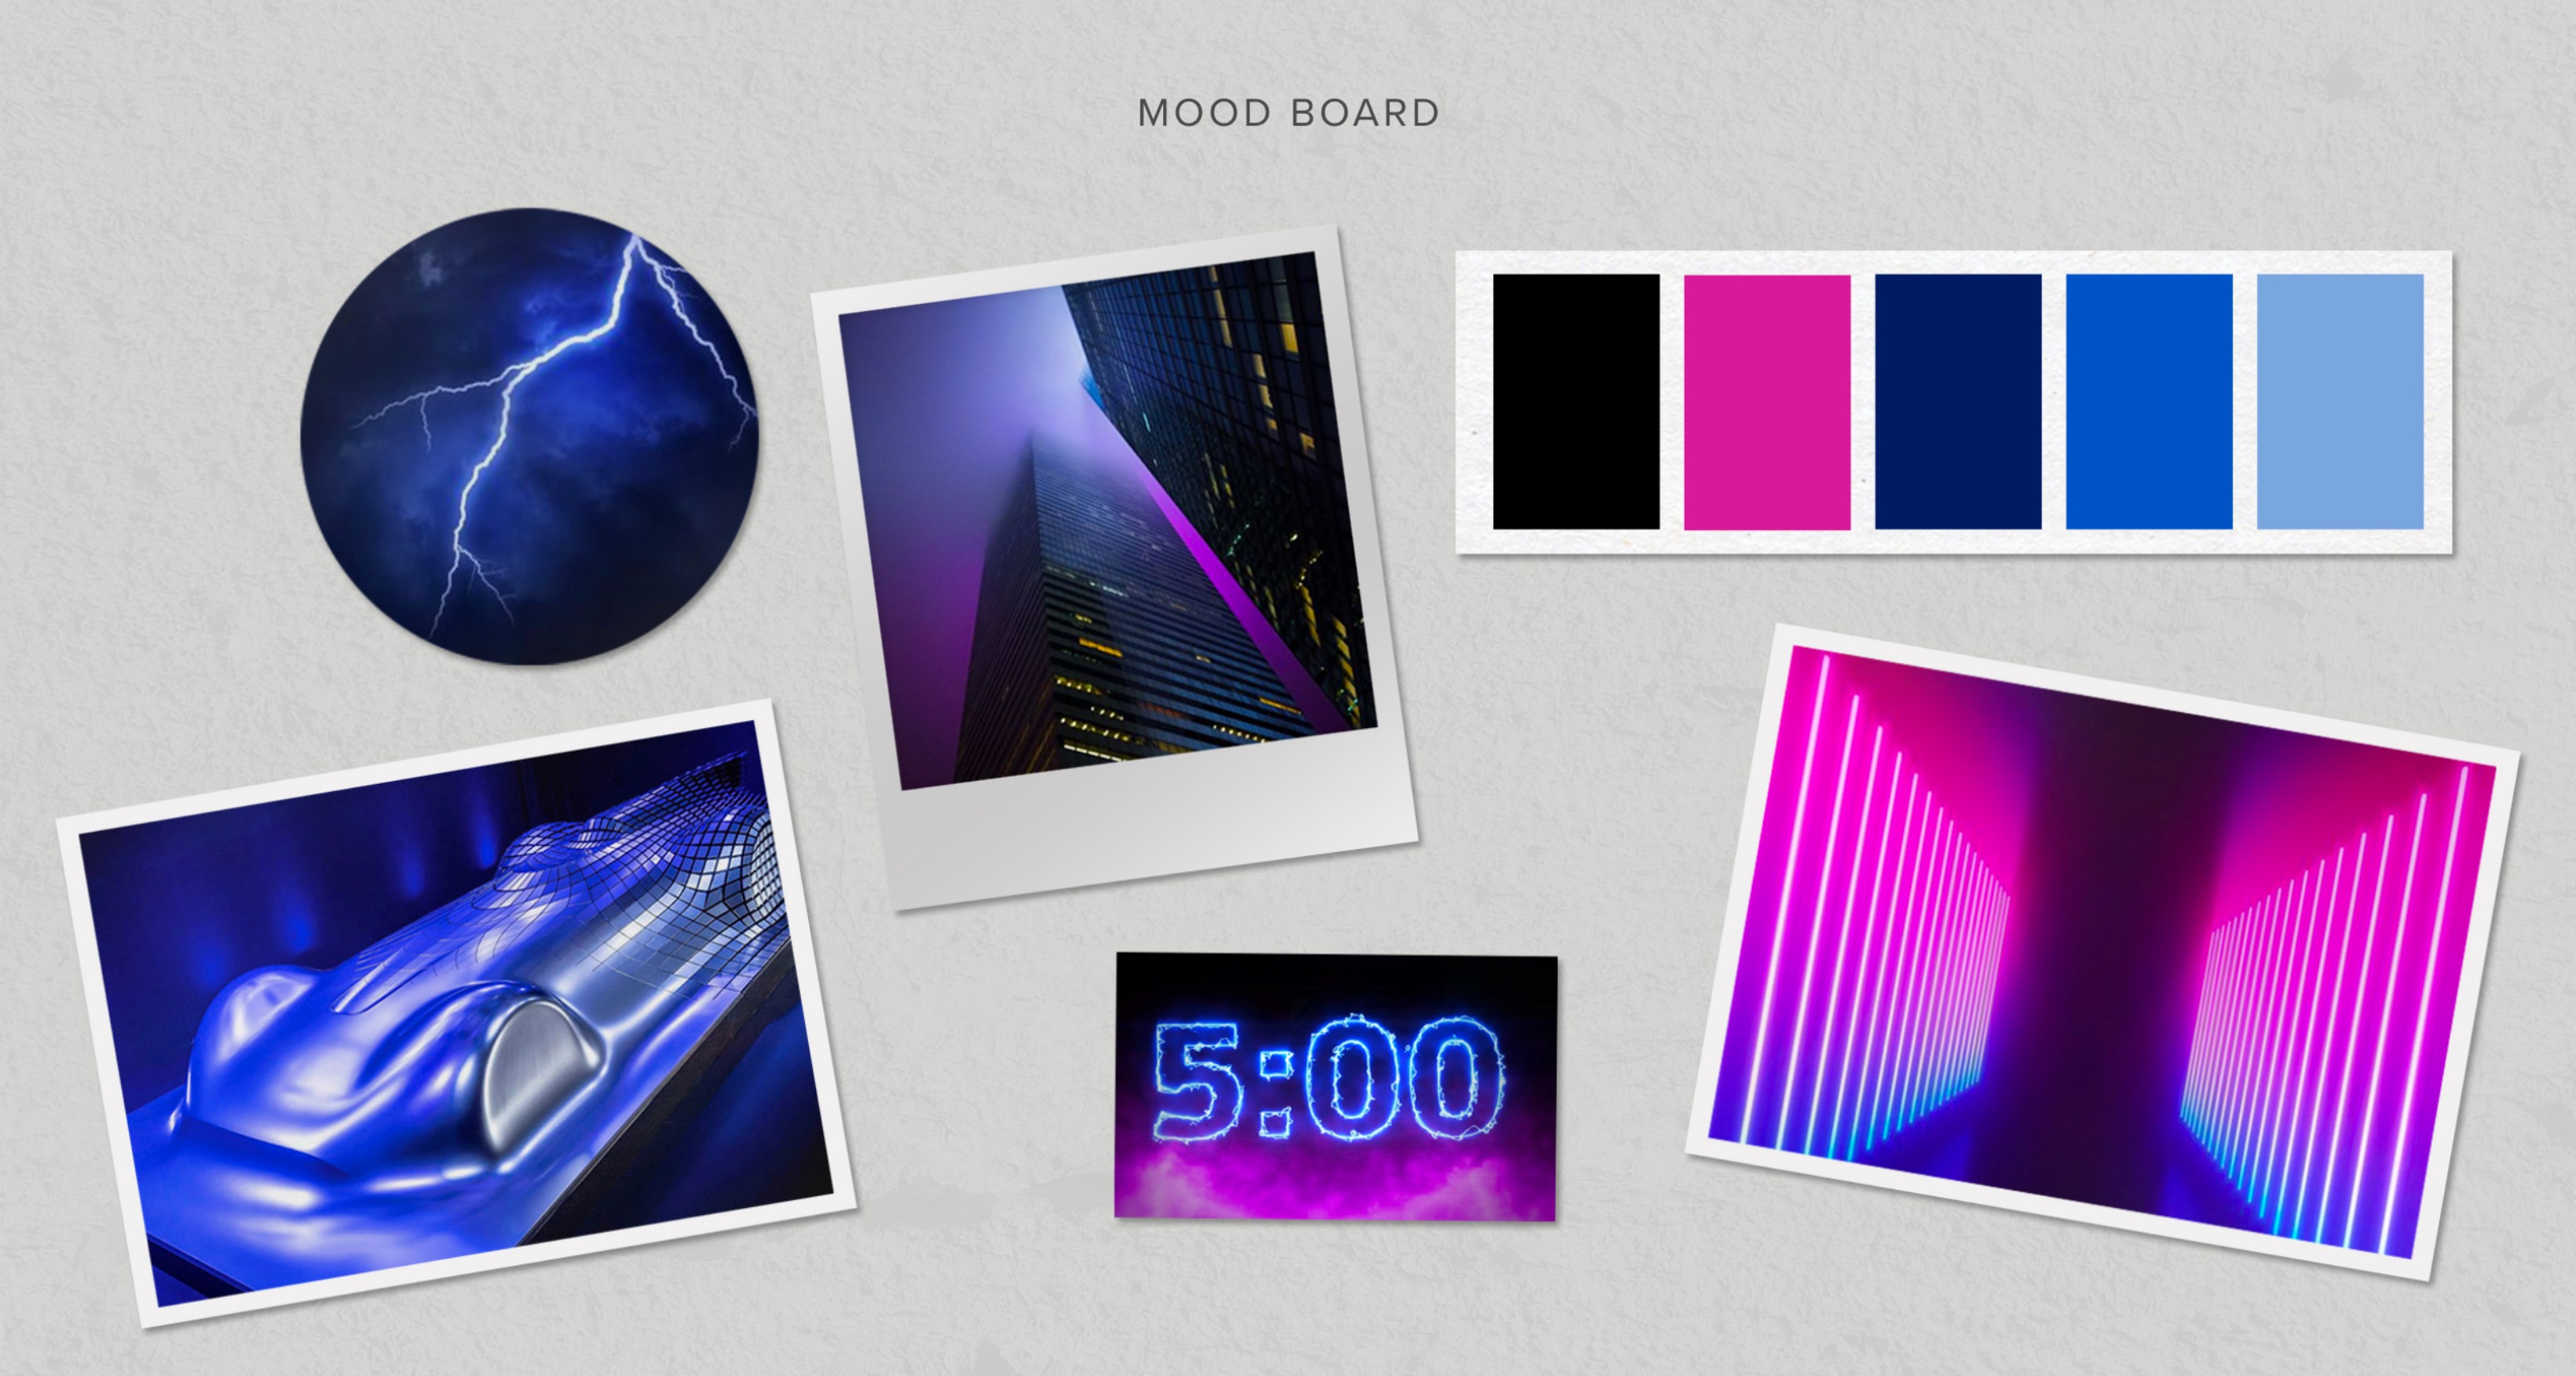 A10 Networks Mood Board